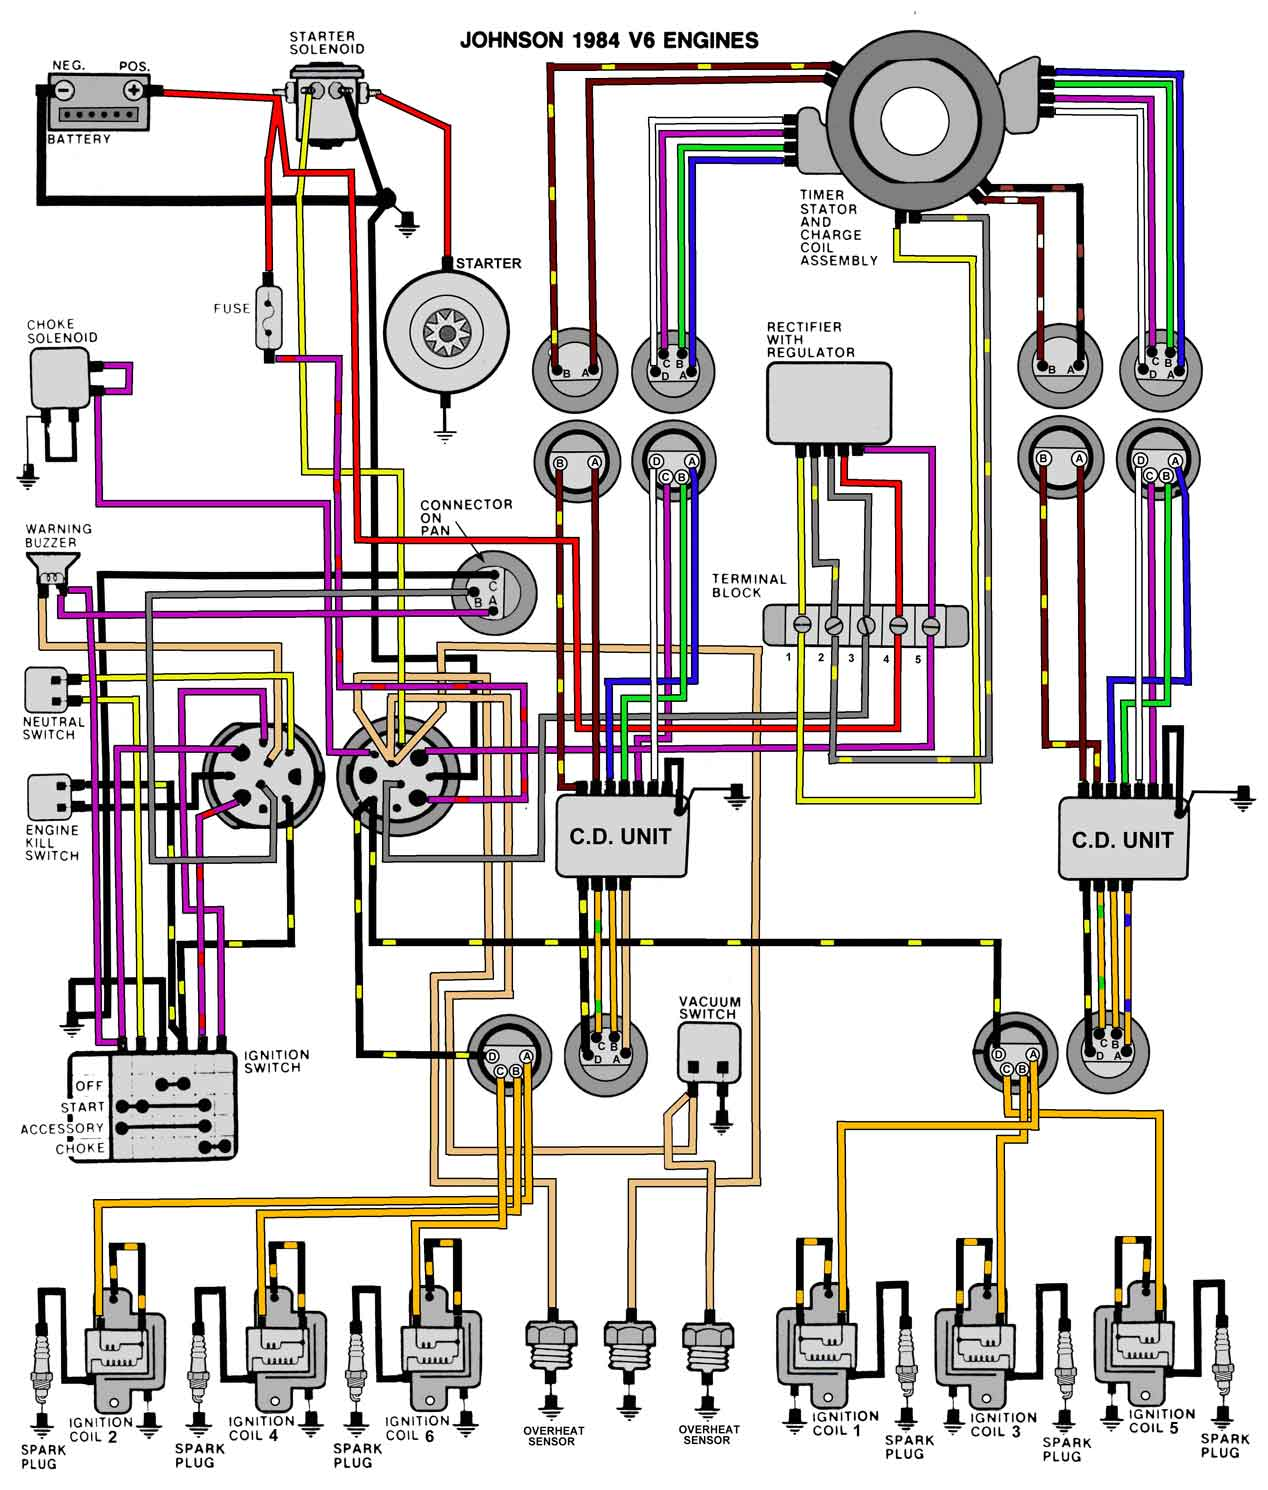 84_V6 mastertech marine evinrude johnson outboard wiring diagrams wiring schematics at n-0.co